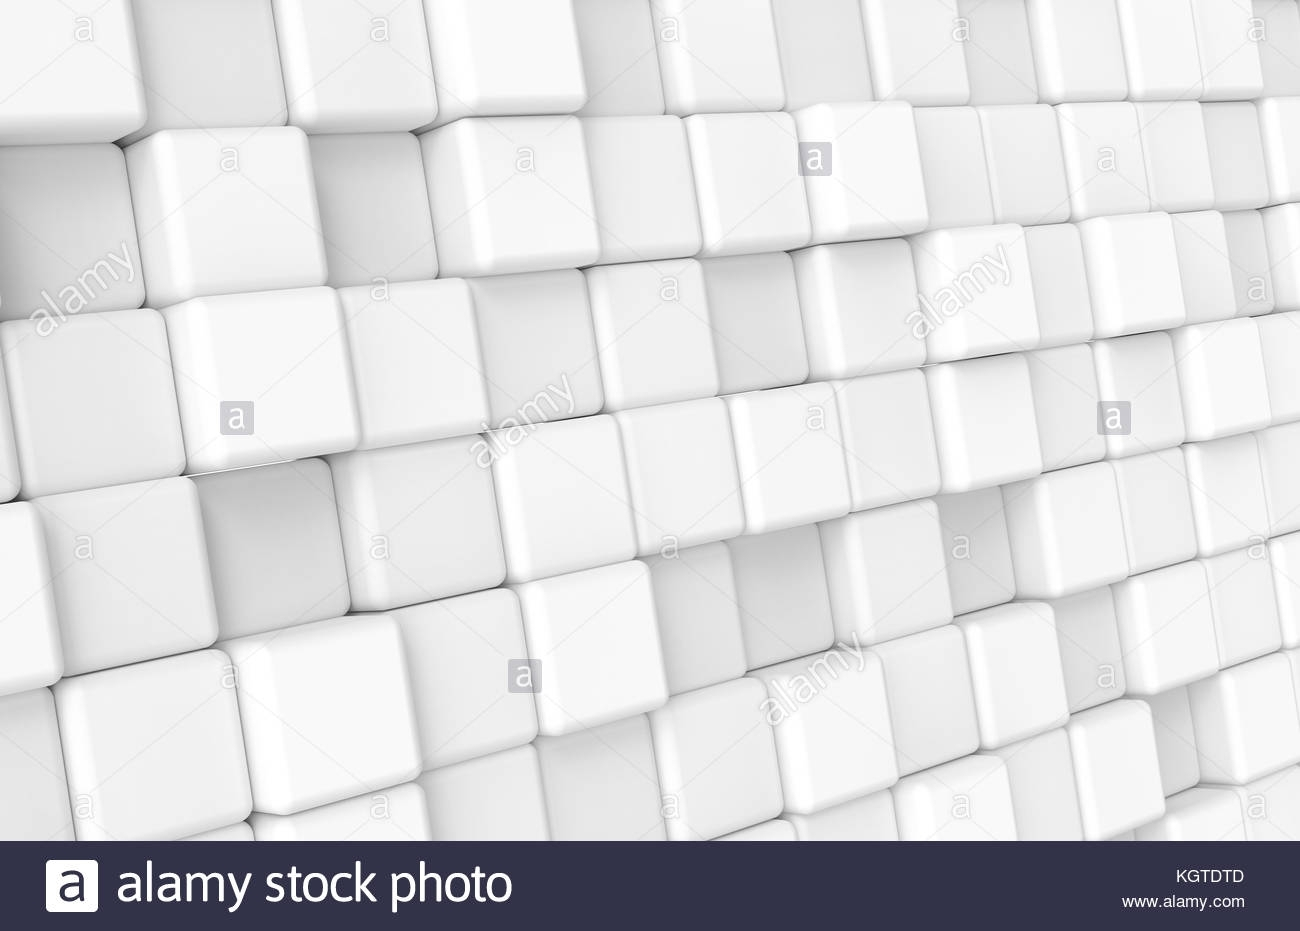 Blank Wallpaper Stock Photos & Blank Wallpaper Stock Images - Alamy in Blank Screensaver Template To Print